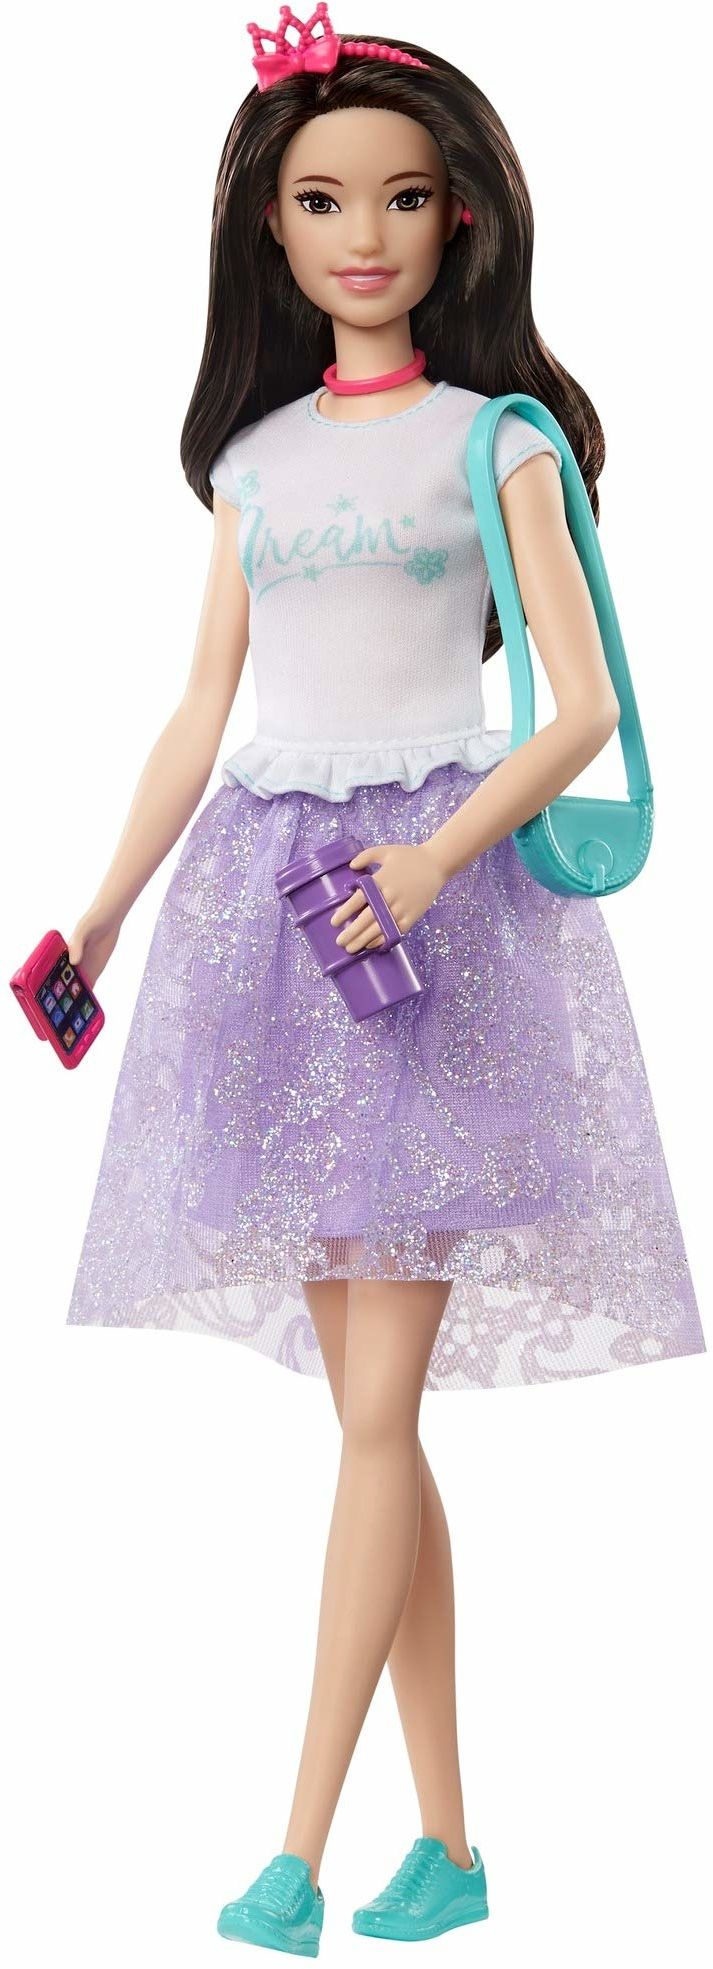 Barbie GML71 Princess Adventure Fantasy lalka